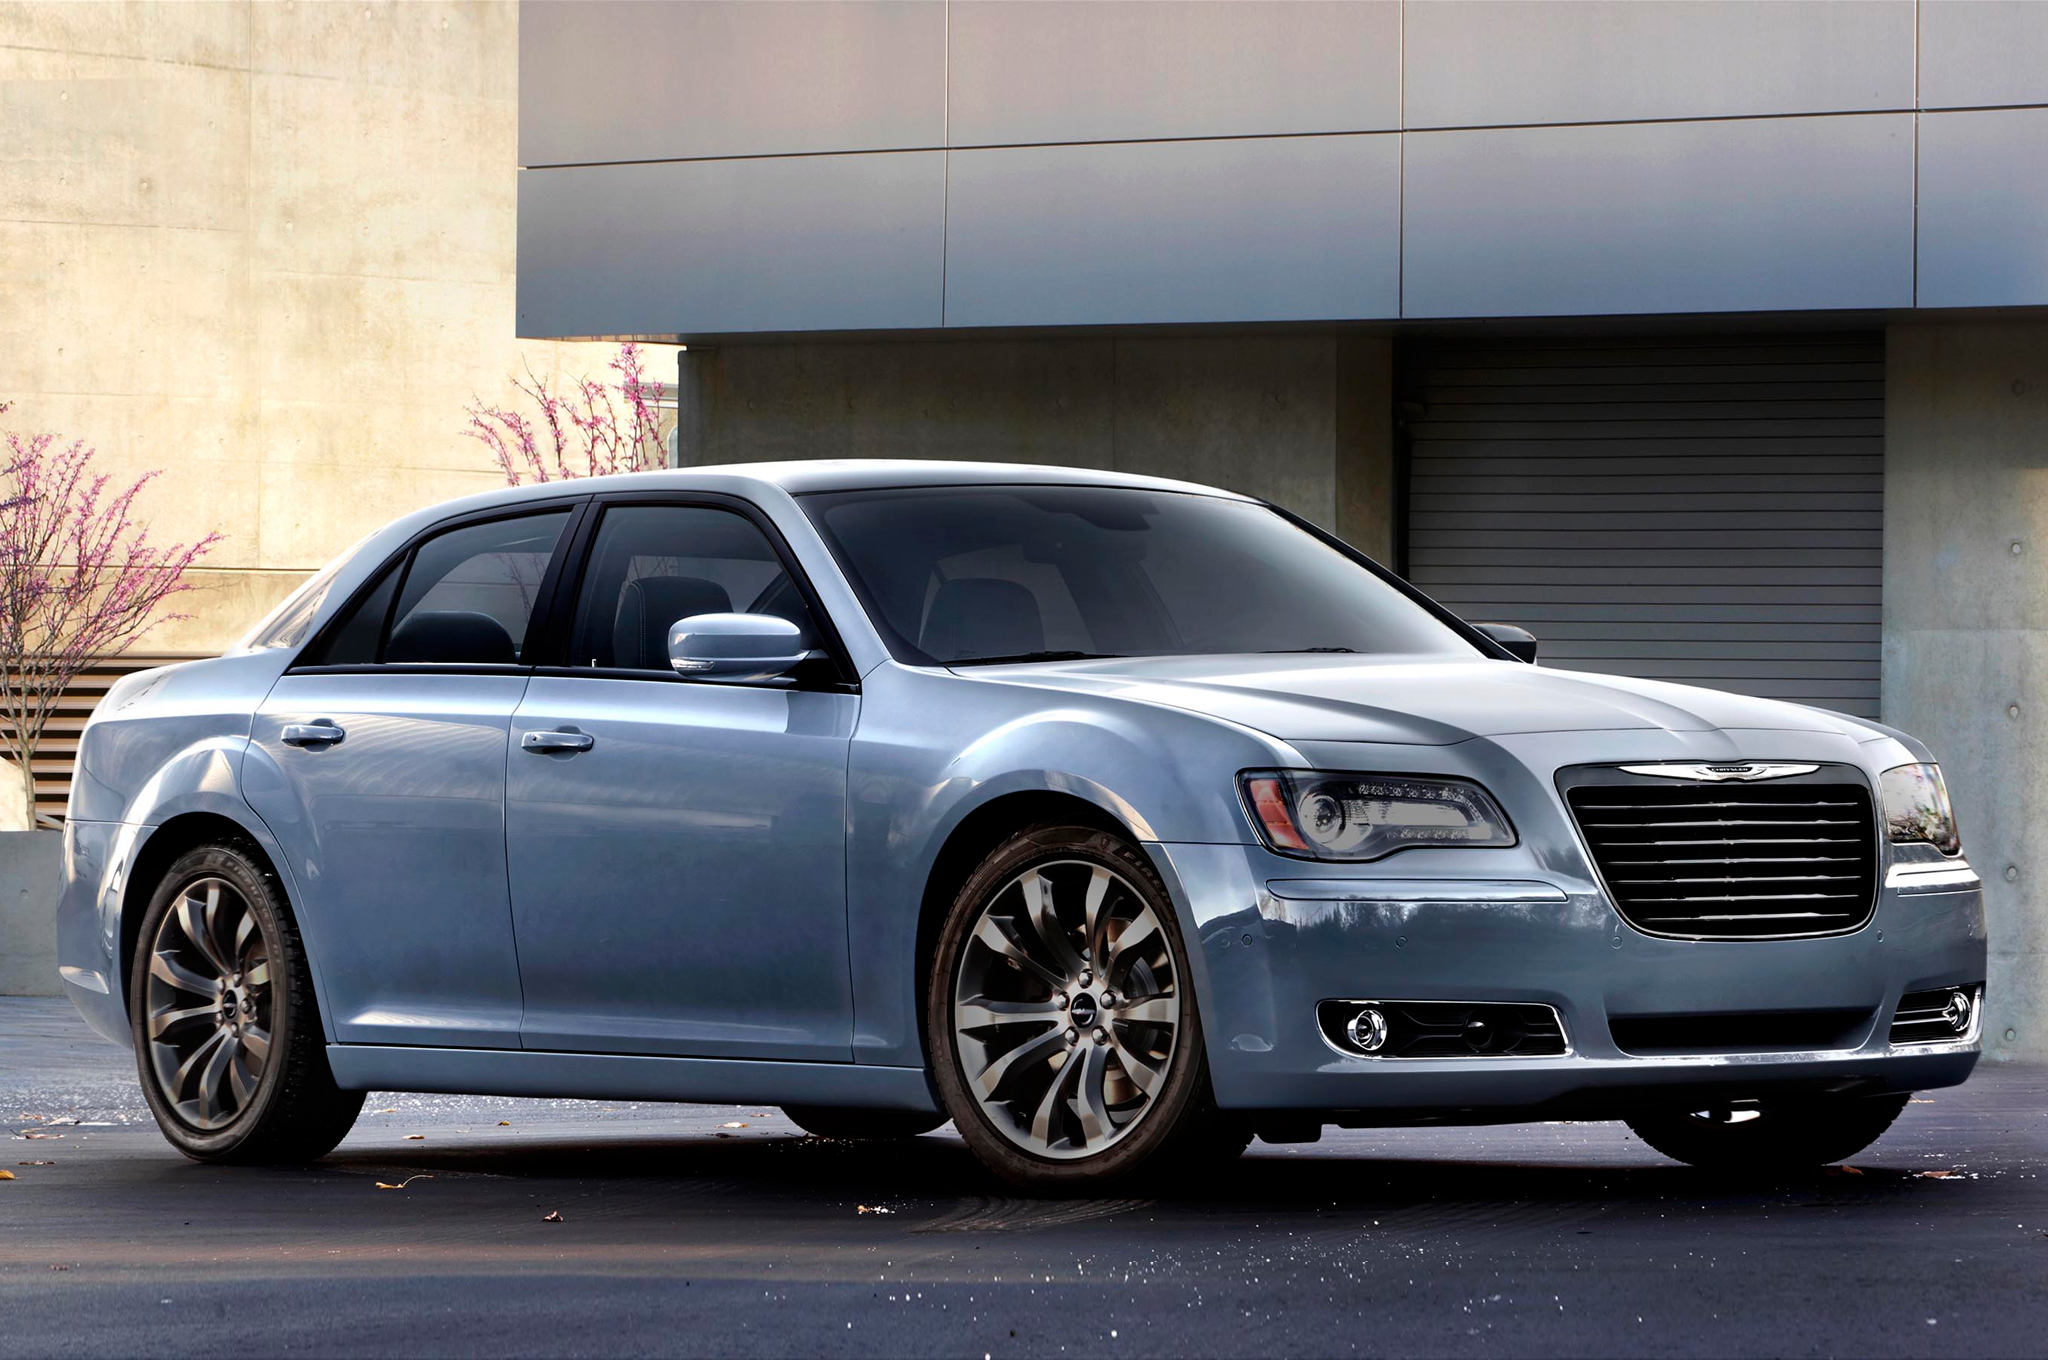 Chrysler 300 2014 #8